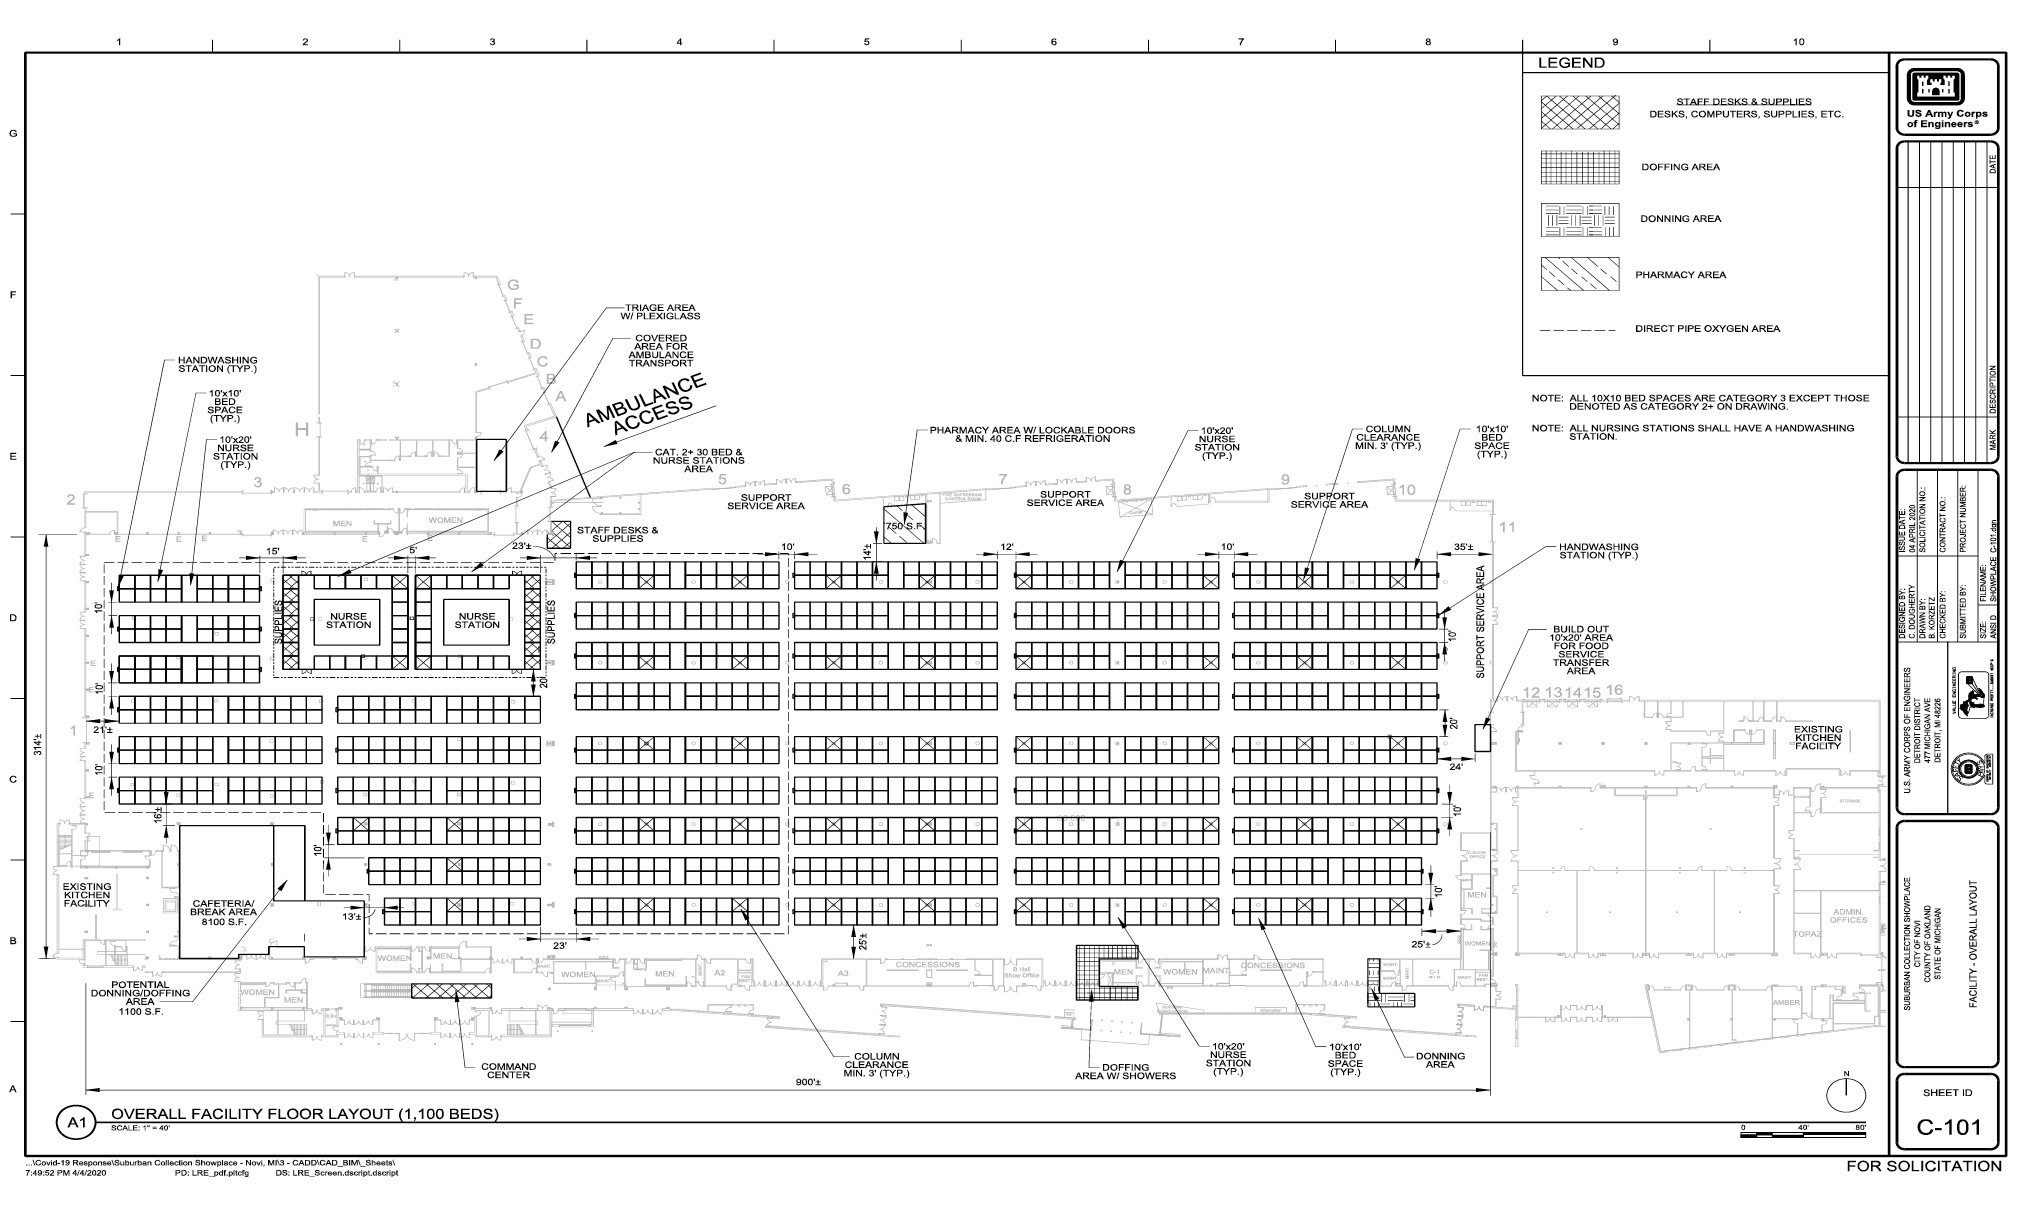 The 1,100-bed floorplan at the expo and convention center space in Novi, Michigan.